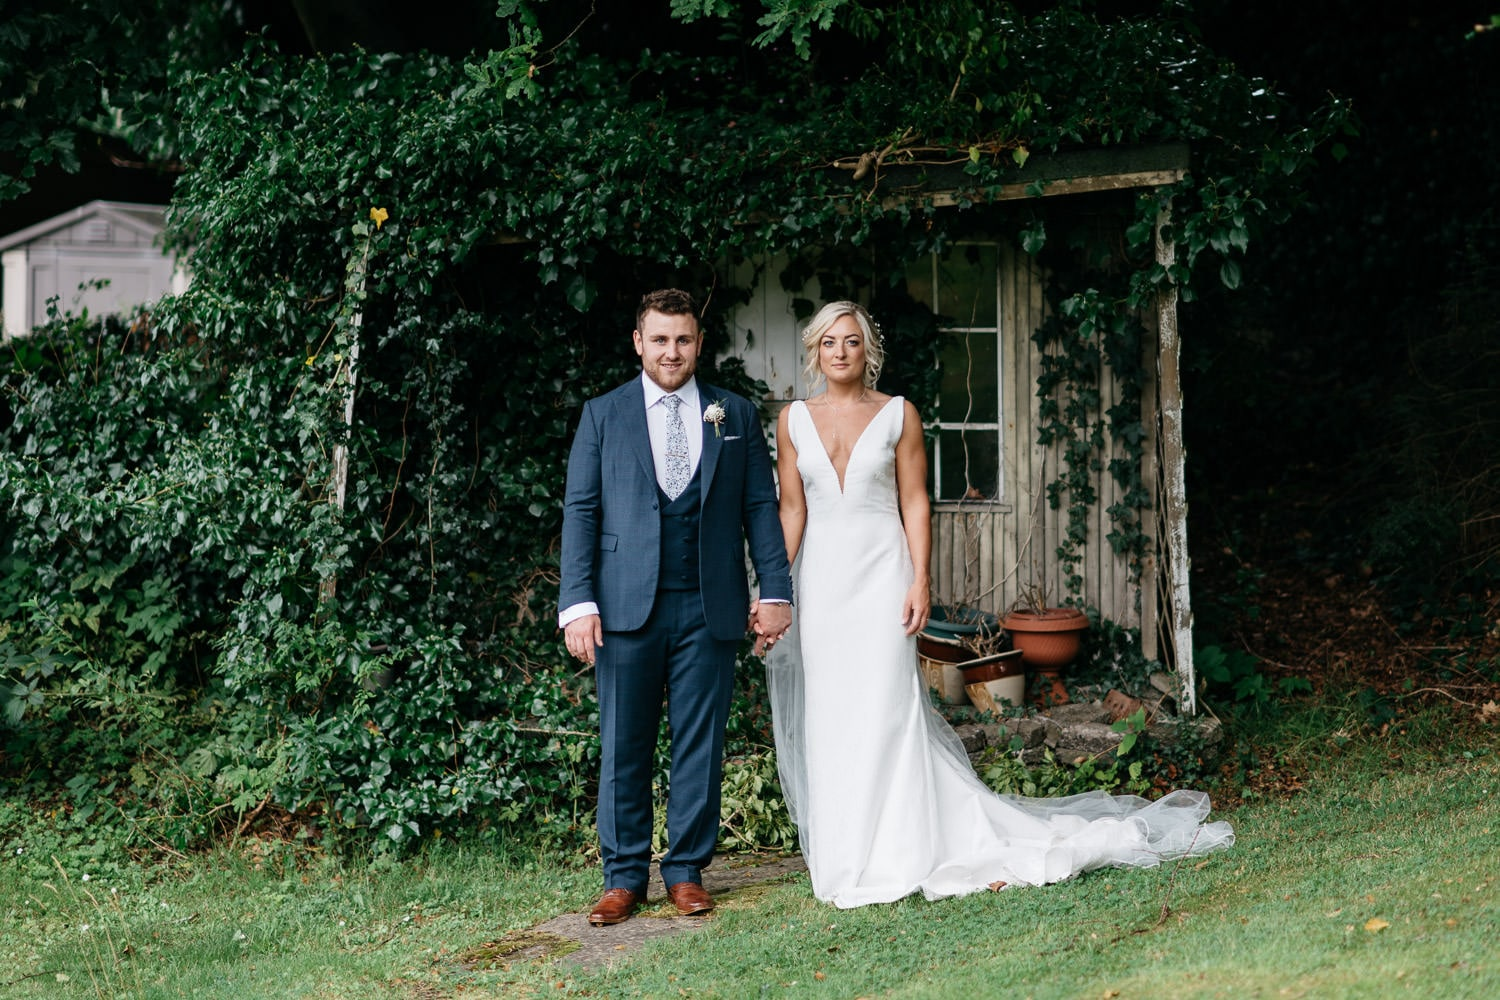 bride and groom holding hands in garden in front of rustic shed Wedding Photographer Northern Ireland